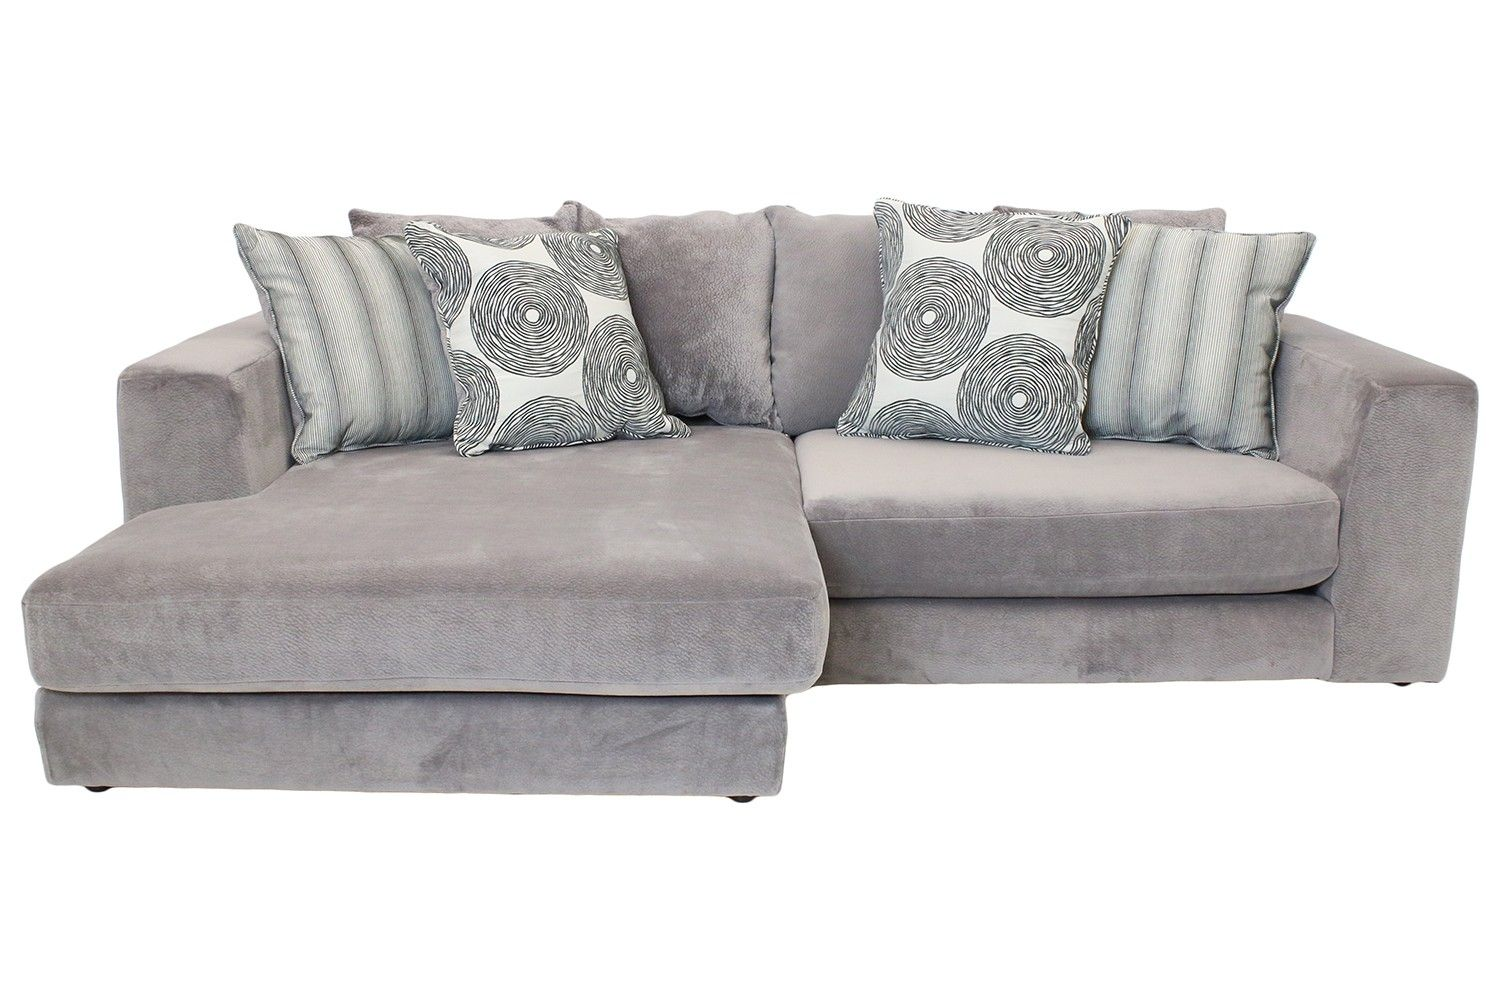 Cloud 2 Sectional Sofa Best Double Bed Uk Graphite Sectionals Living Room Mor